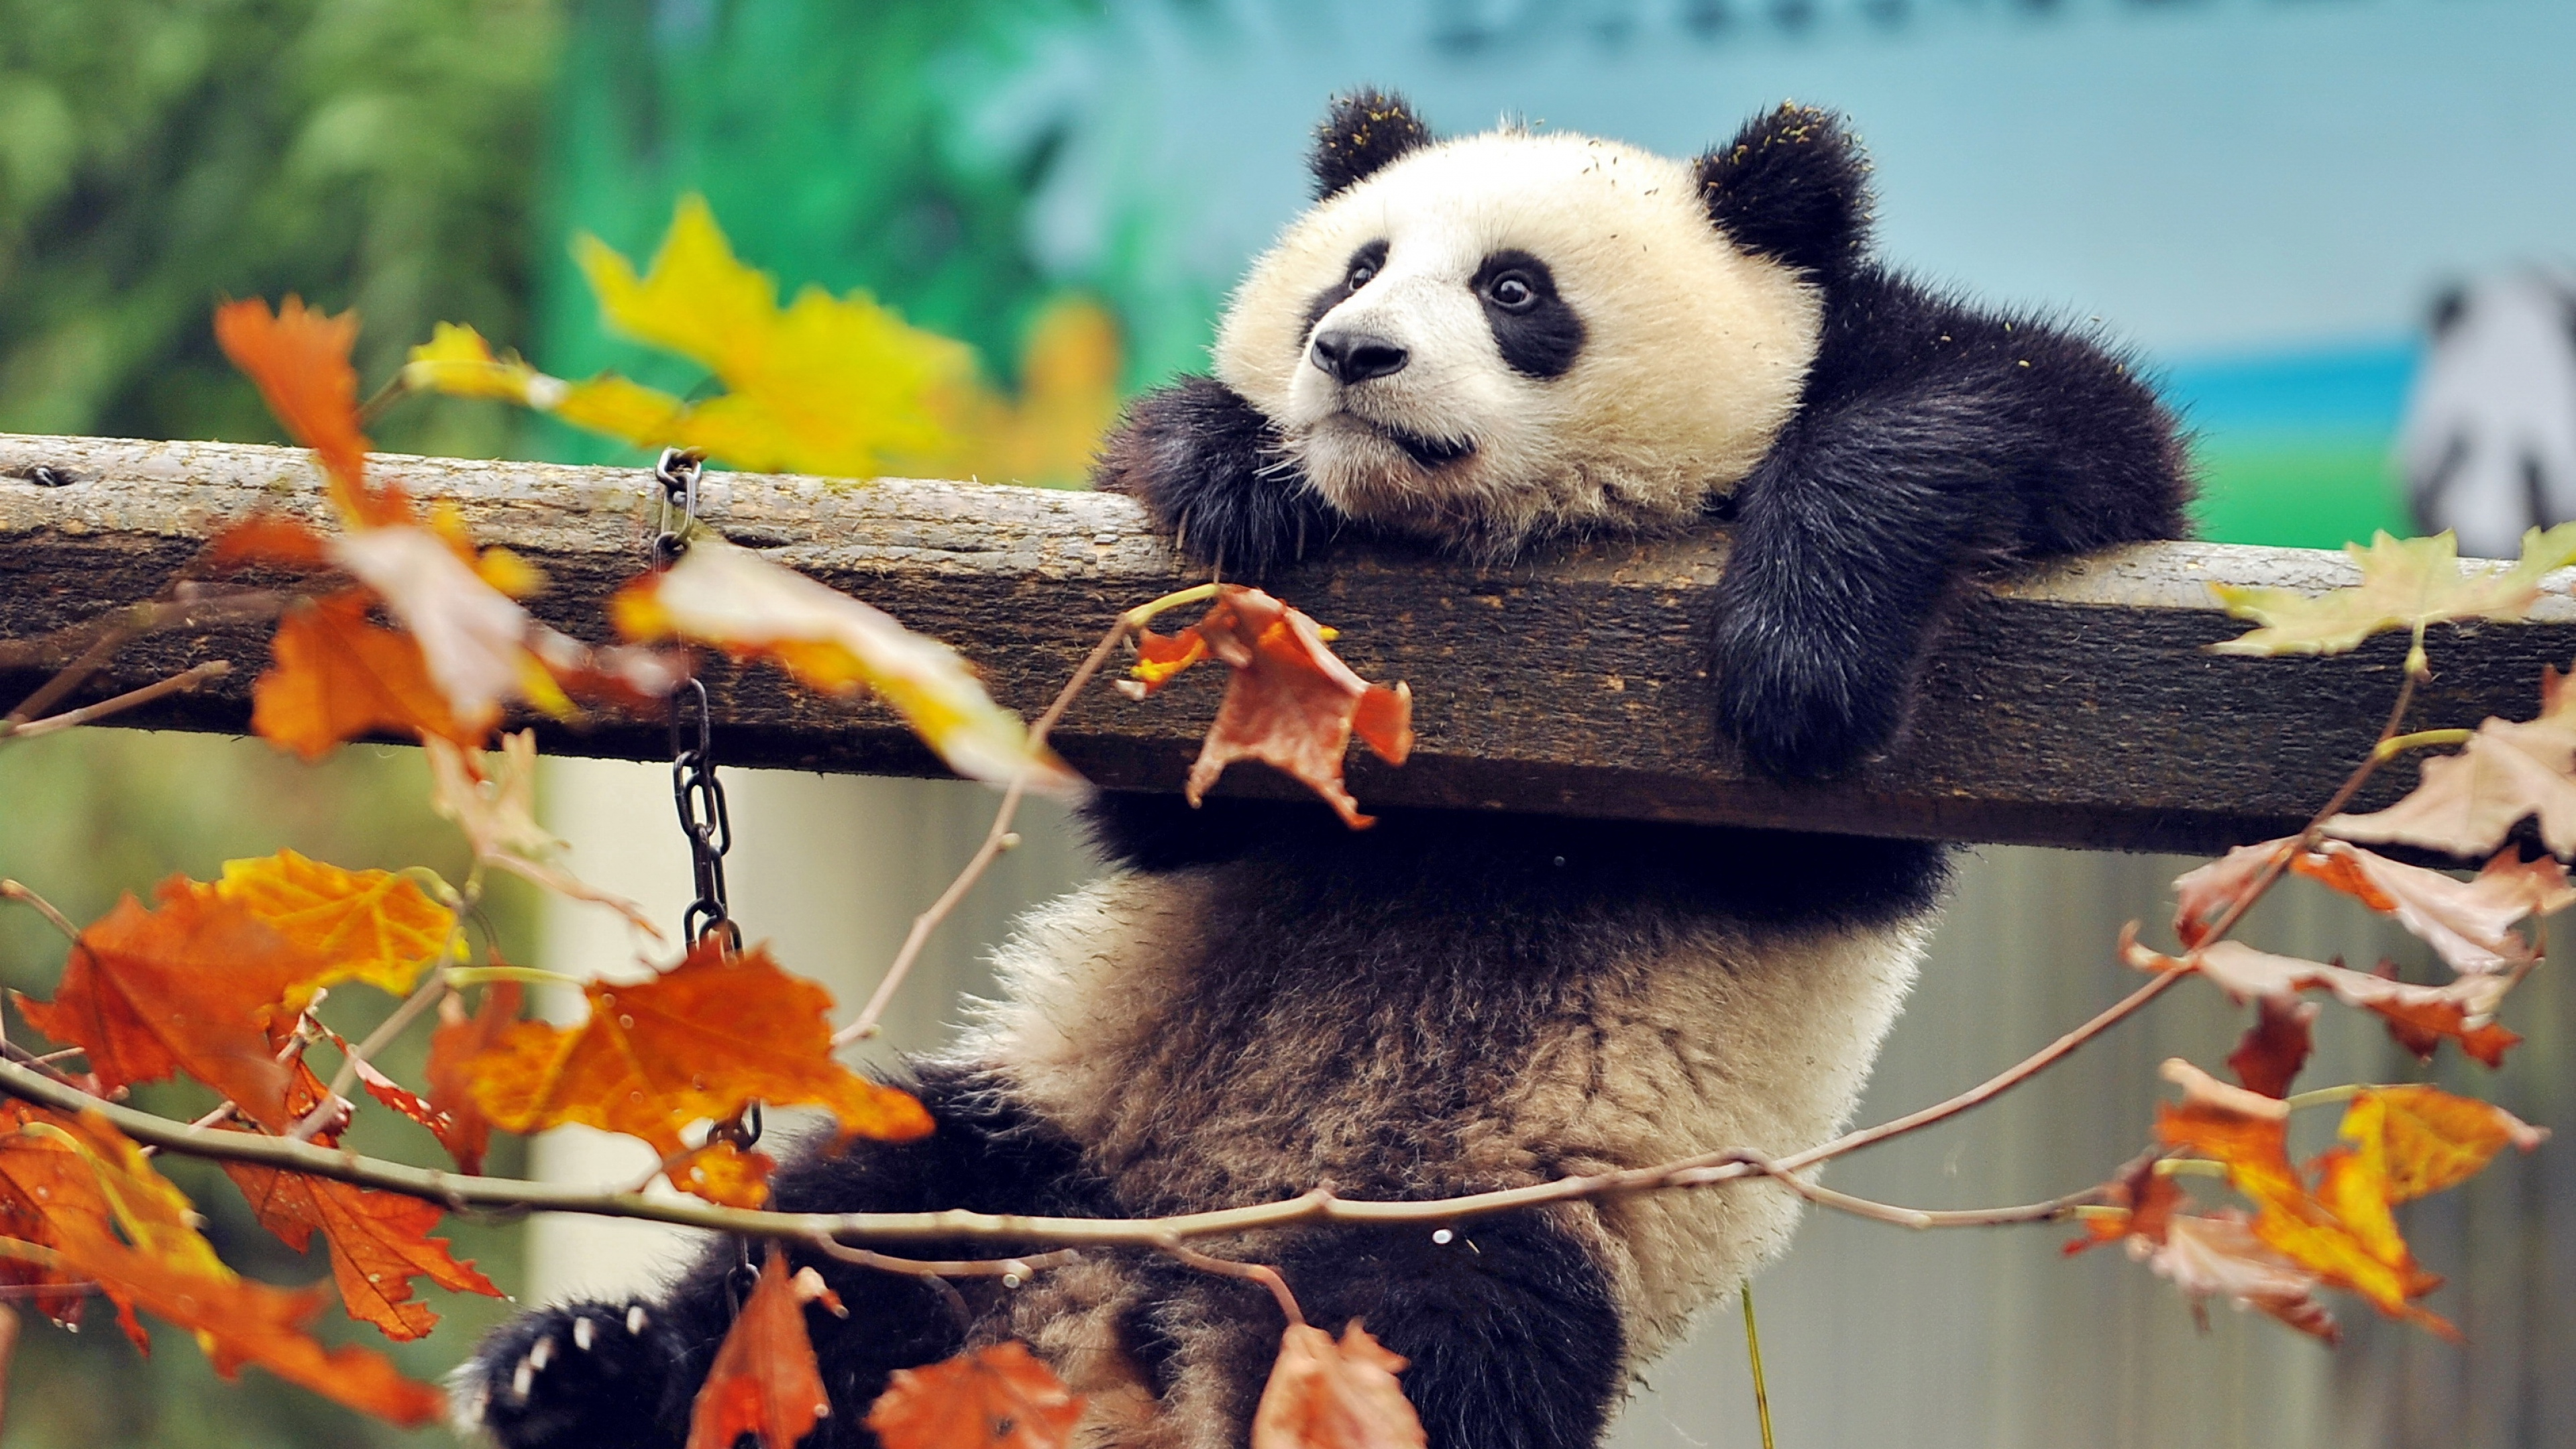 2560x1024 Wallpaper Cars Cute Panda Hd Animals 4k Wallpapers Images Backgrounds